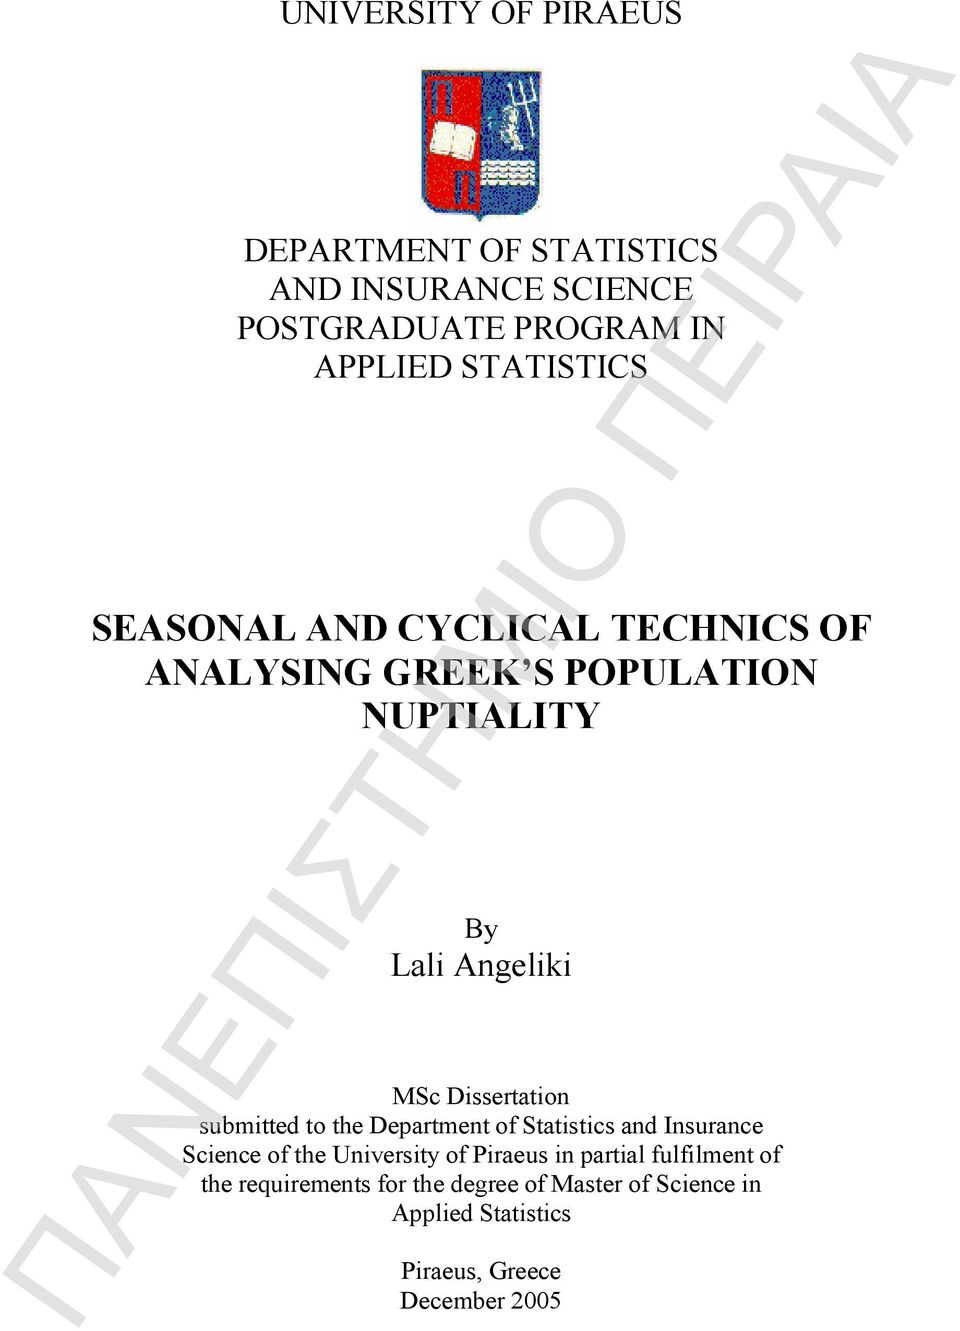 Dissertation submitted to the Department of Statistics and Insurance Science of the University of Piraeus in